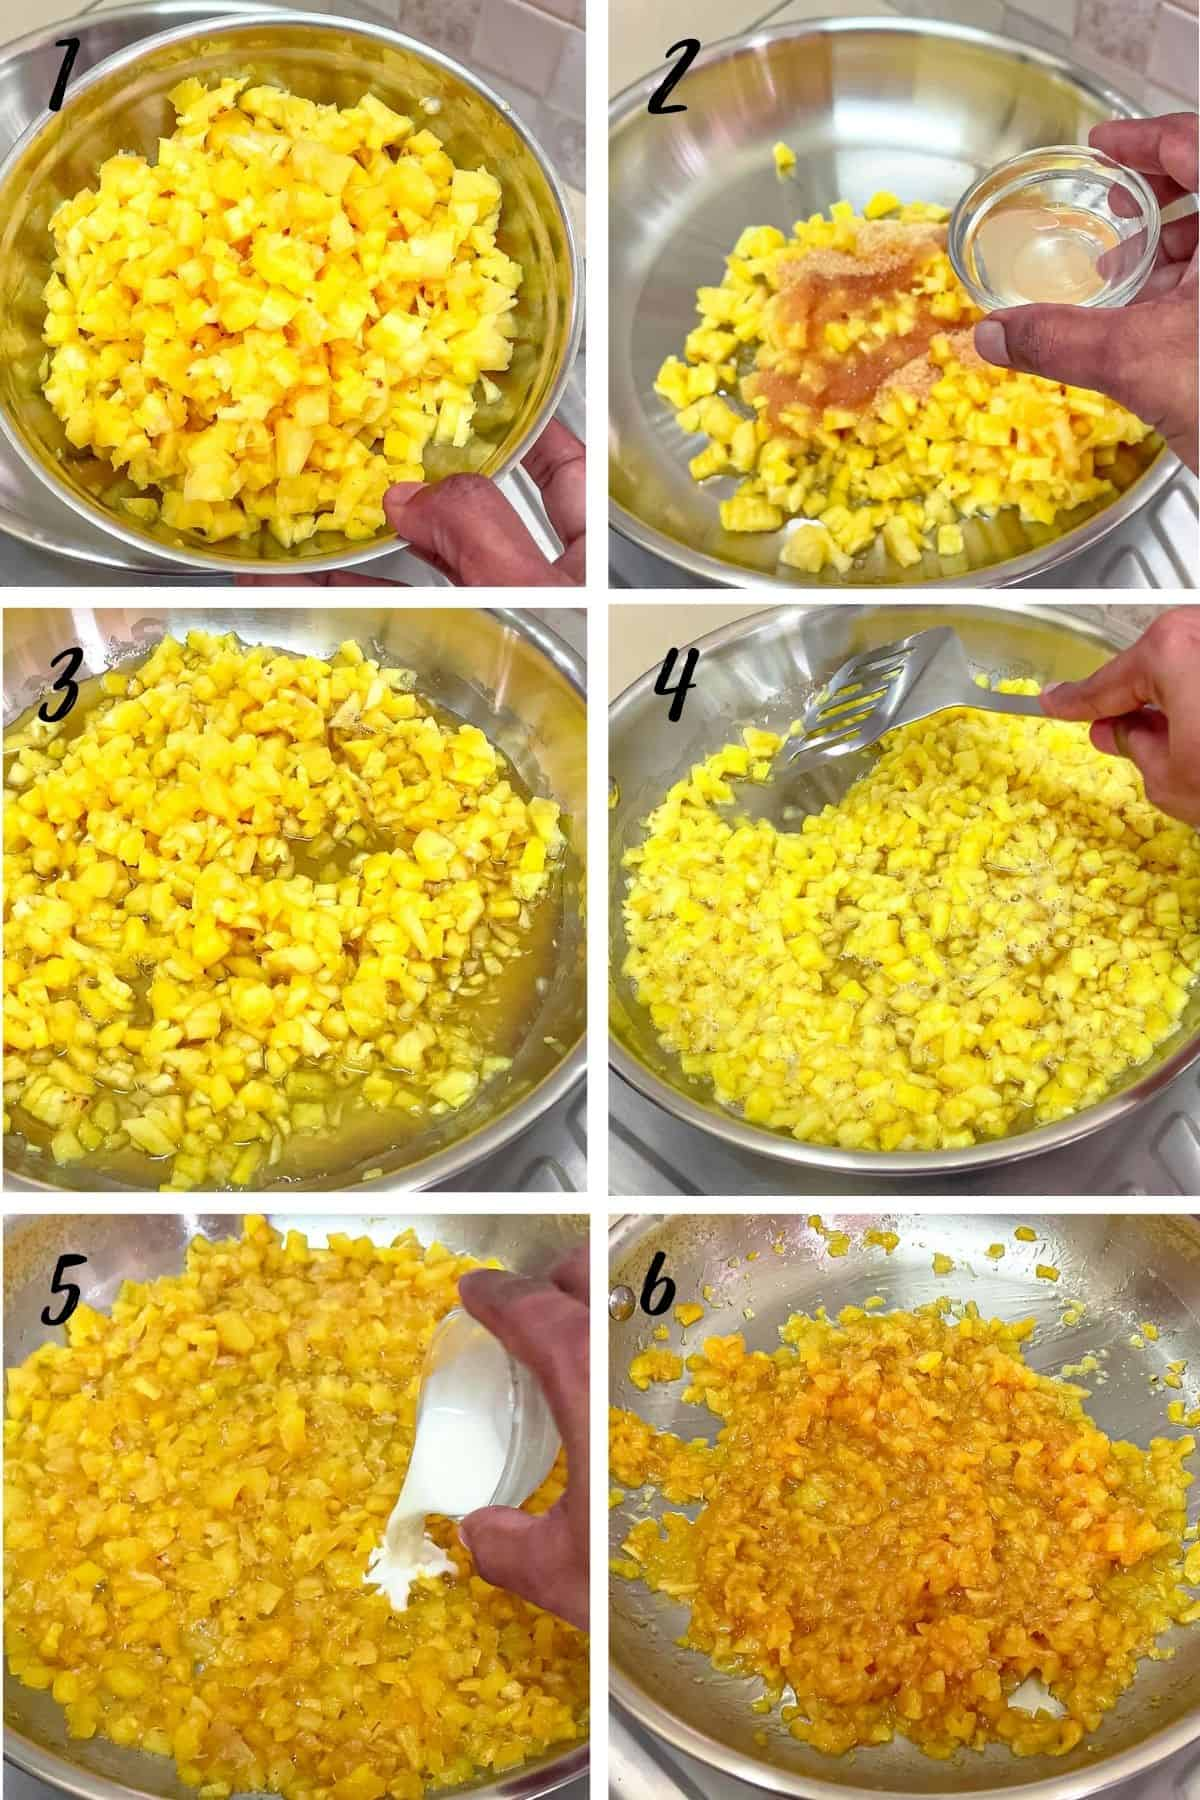 A poster of 6 images showing how to cook pineapple filling